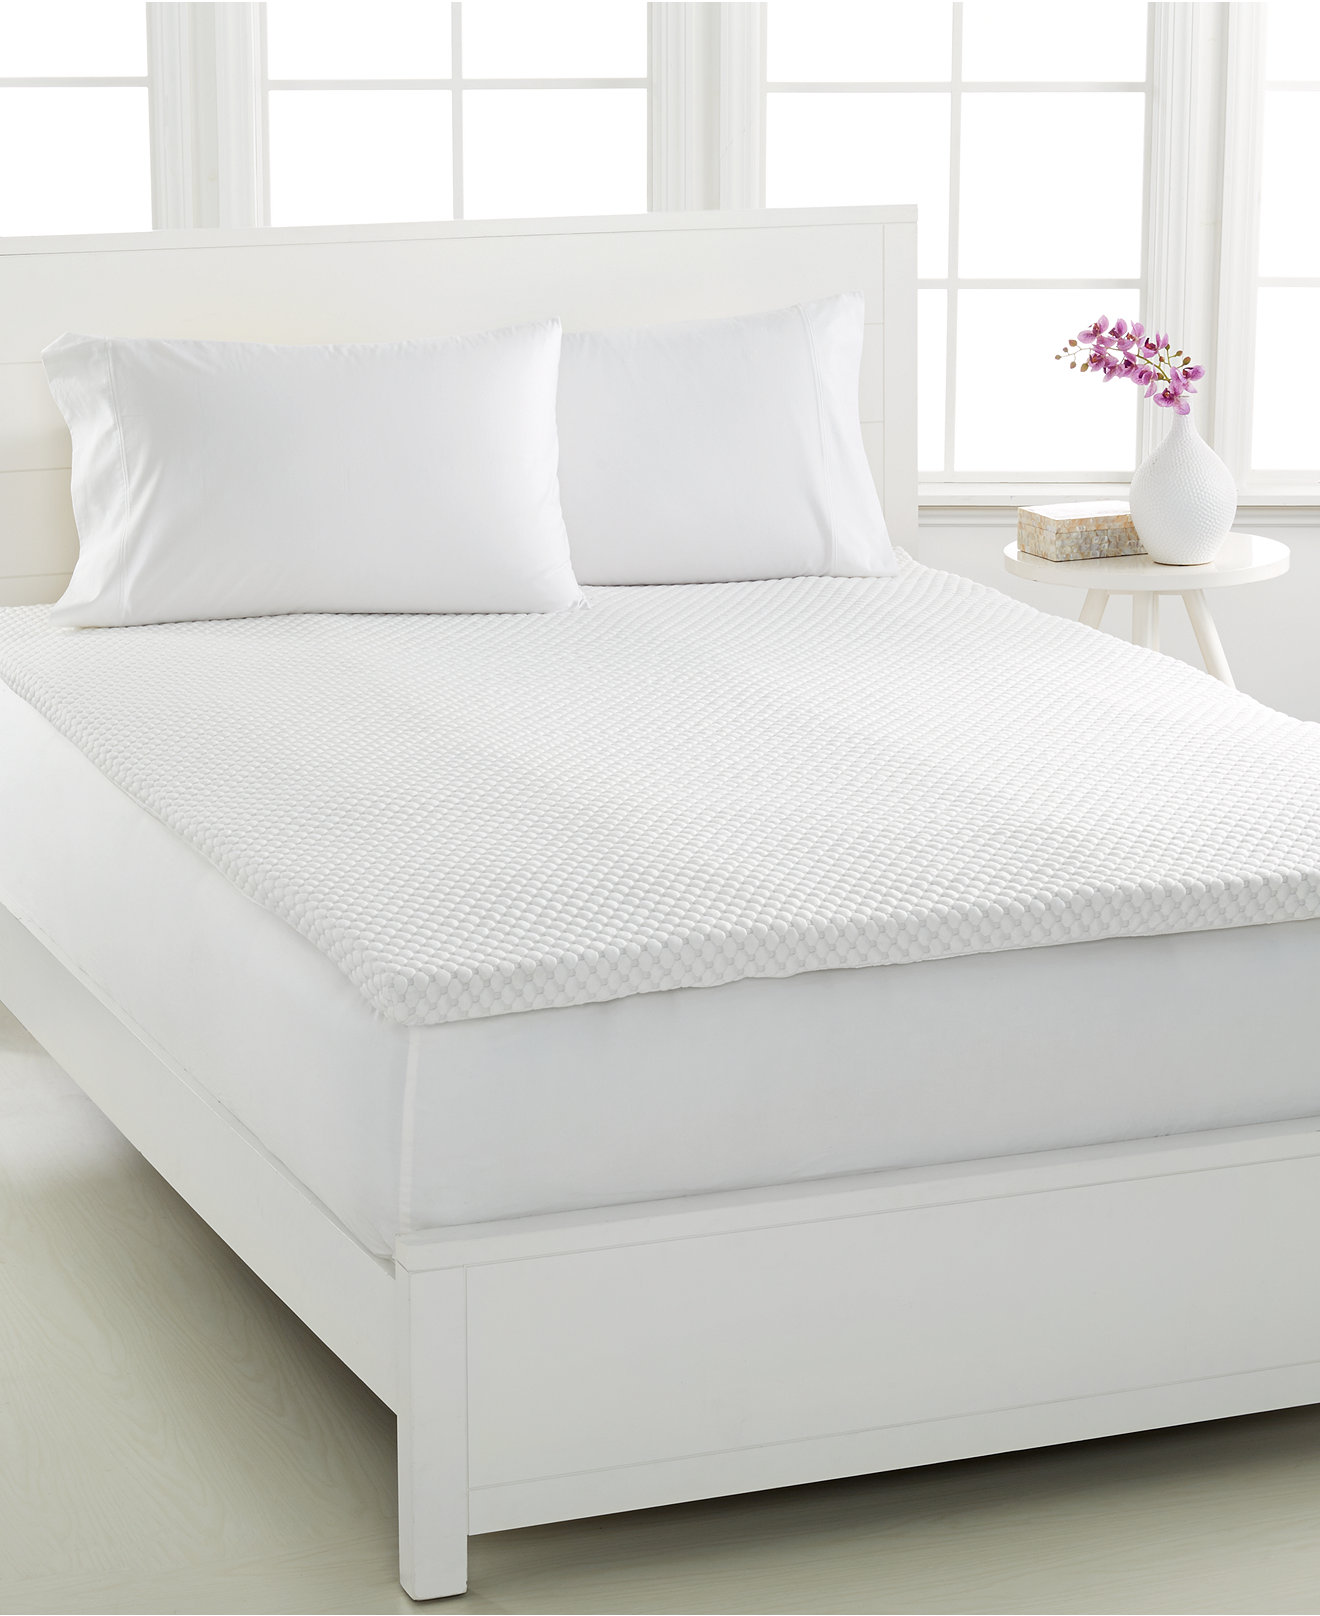 Dream Science 2 Memory Foam Mattress Toppers Venttech Ventilated By Martha Collection Created For Macy S Pads Bed